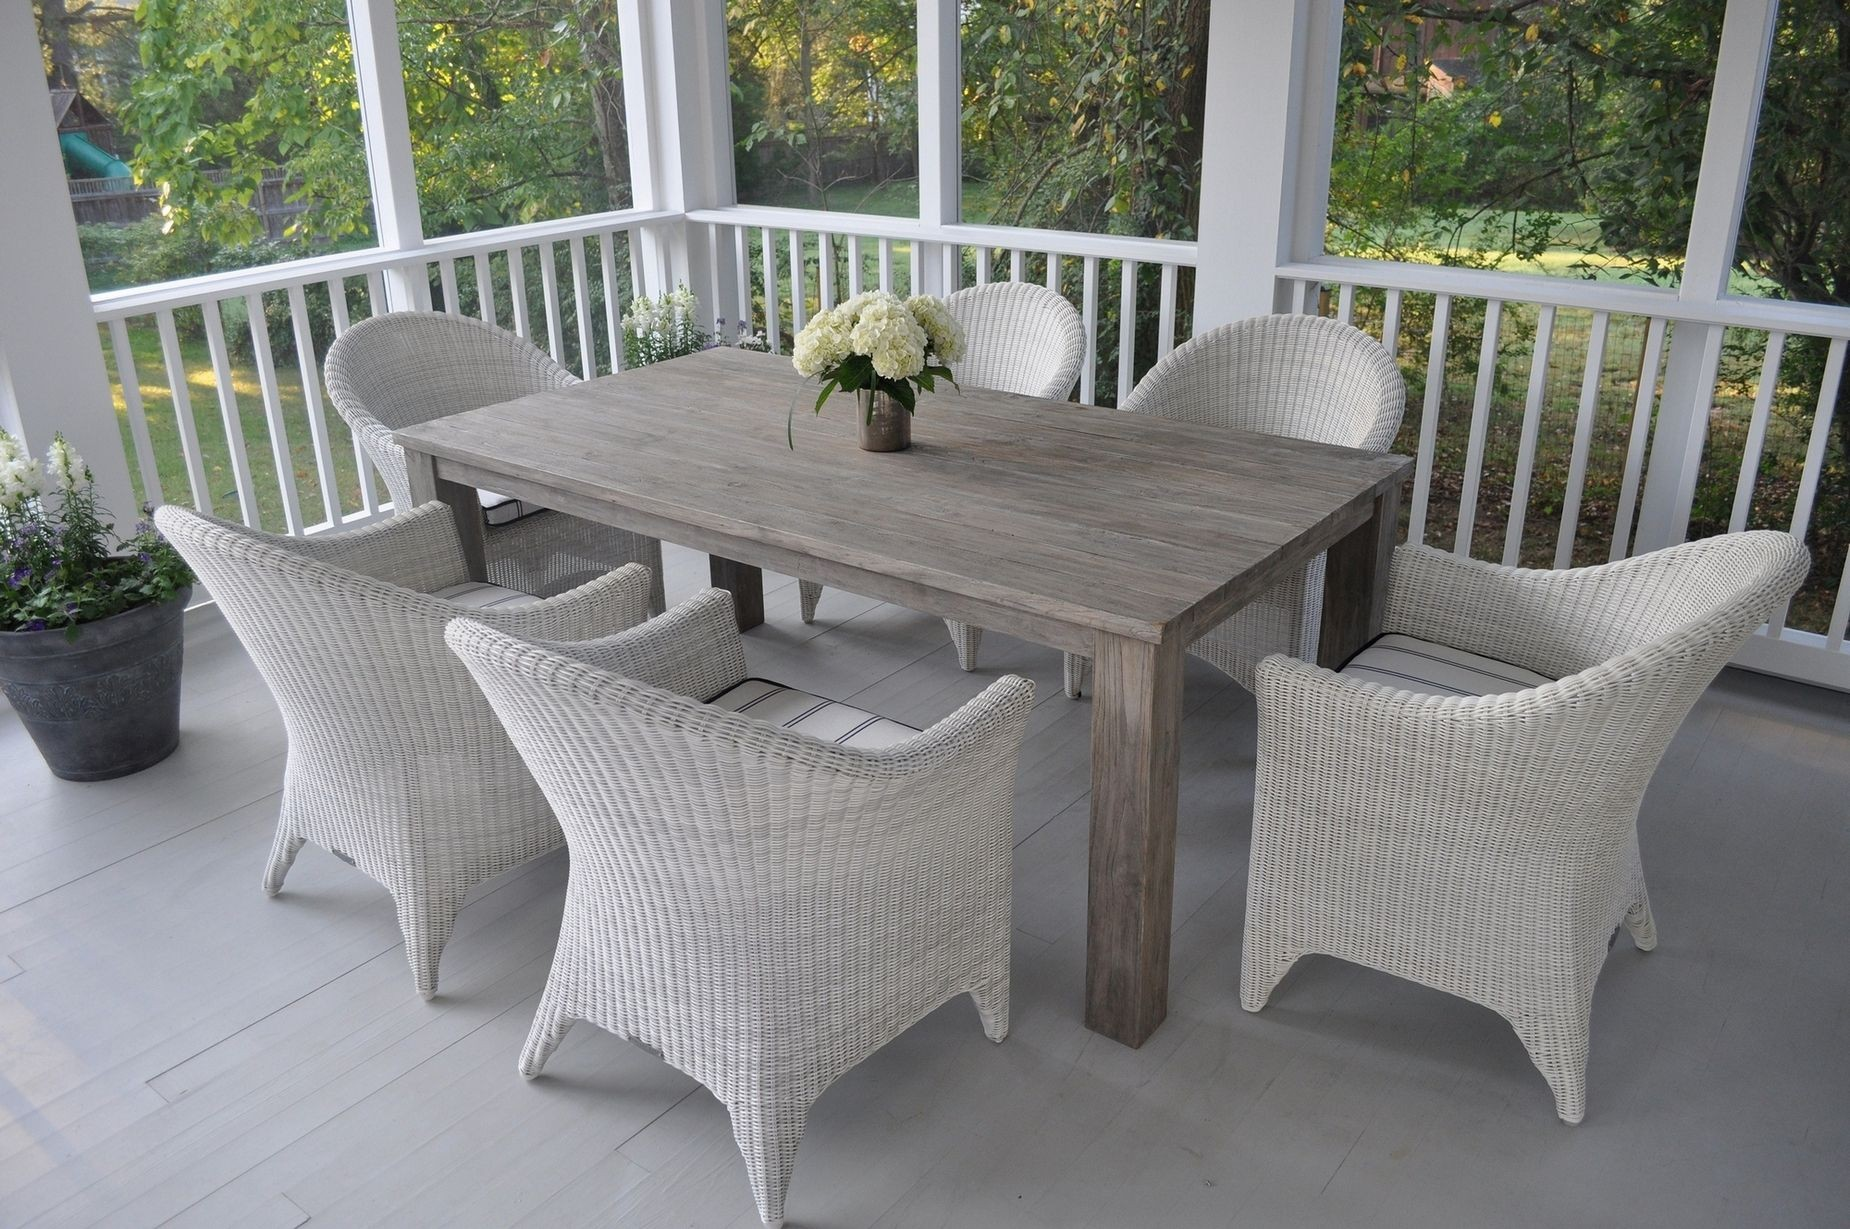 Kingsley-Bate Valhalla and Cape Cod 5 Piece Woven and Teak  Dining Ensemble